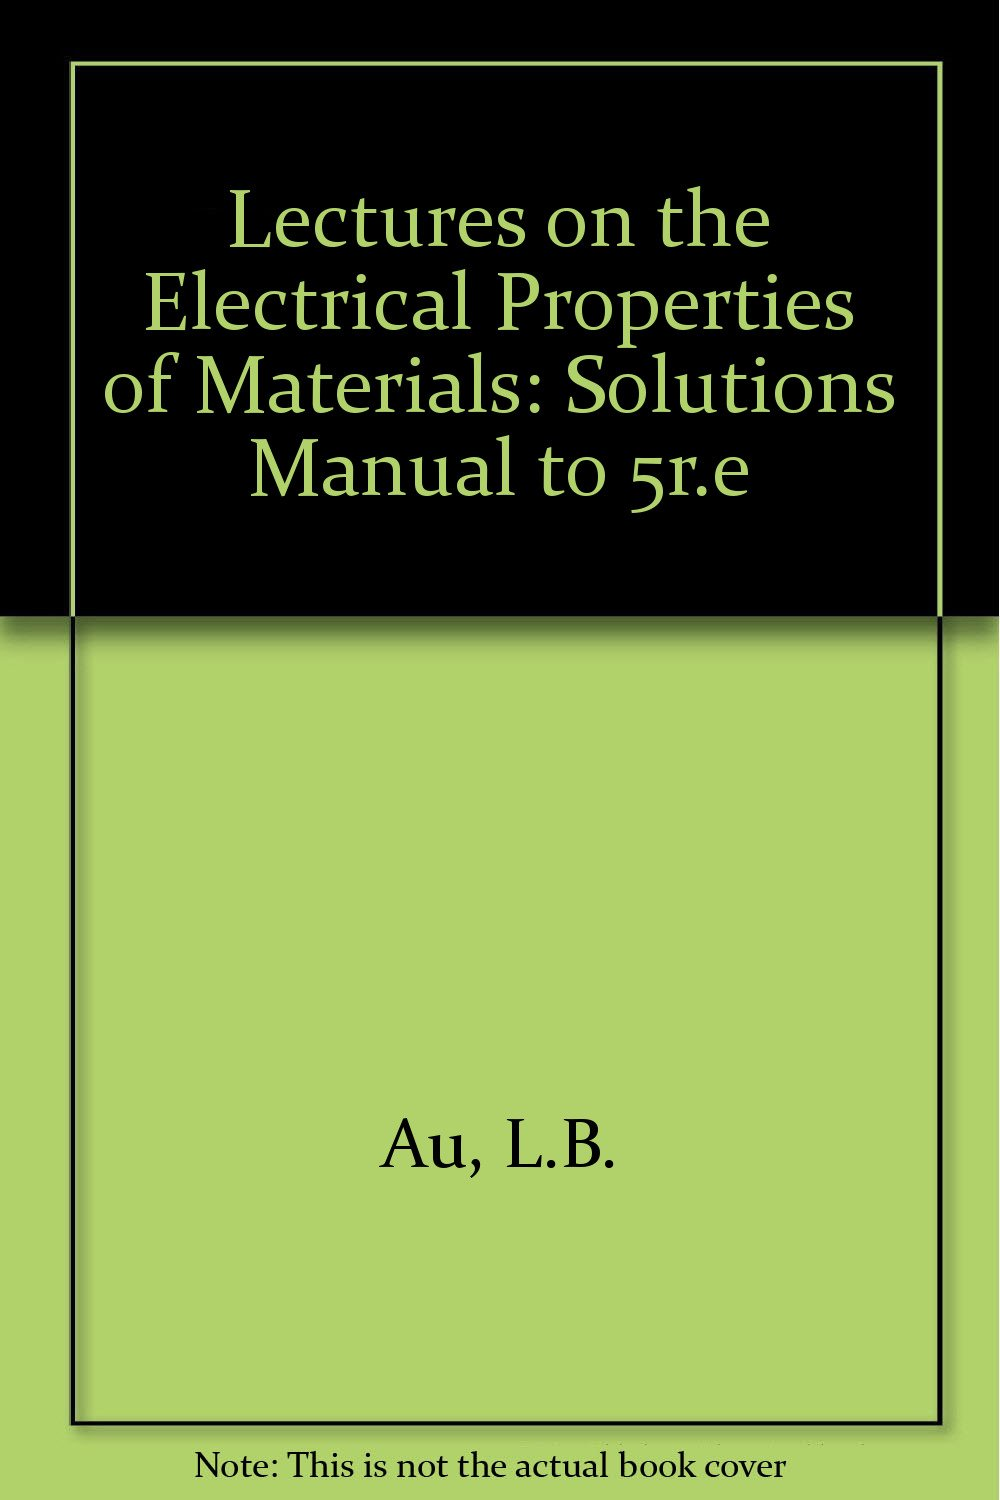 Buy Lectures on the Electrical Properties of Materials: Solutions Manual to  5r.e Book Online at Low Prices in India | Lectures on the Electrical  Properties ...